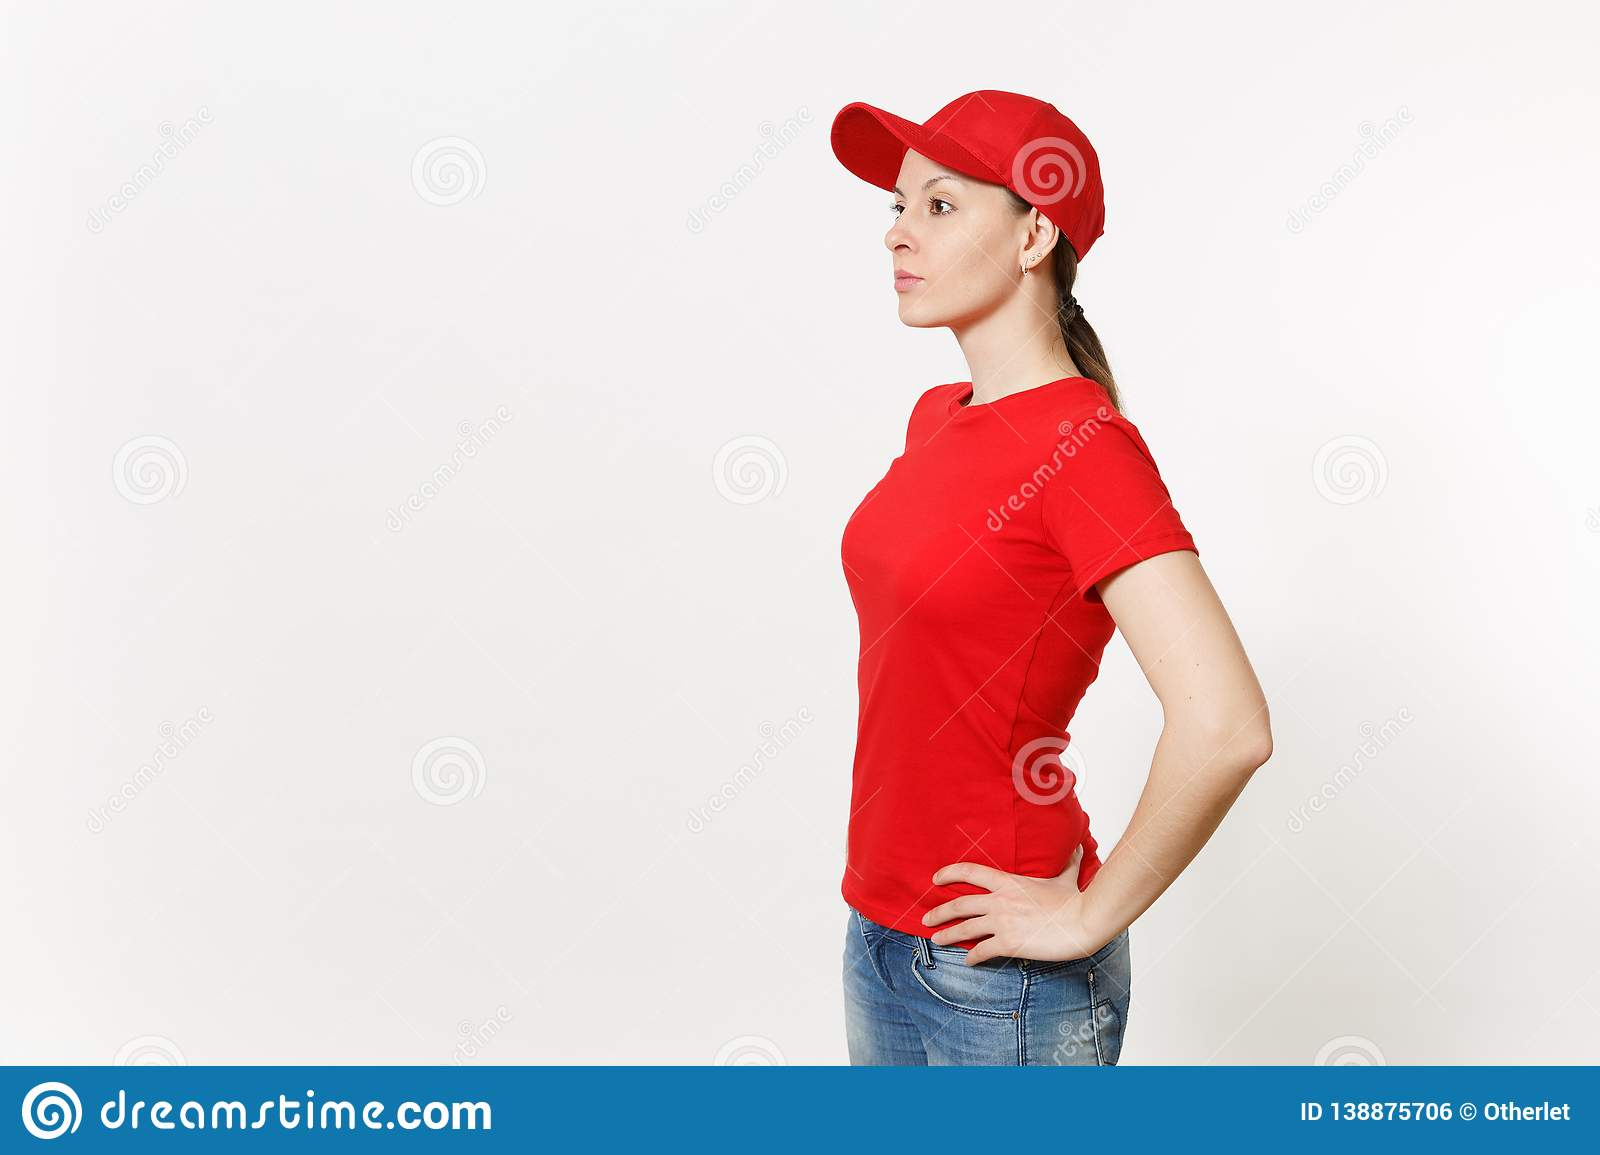 Delivery woman in red uniform isolated on white background side view. Professional female in cap, t-shirt, jeans working